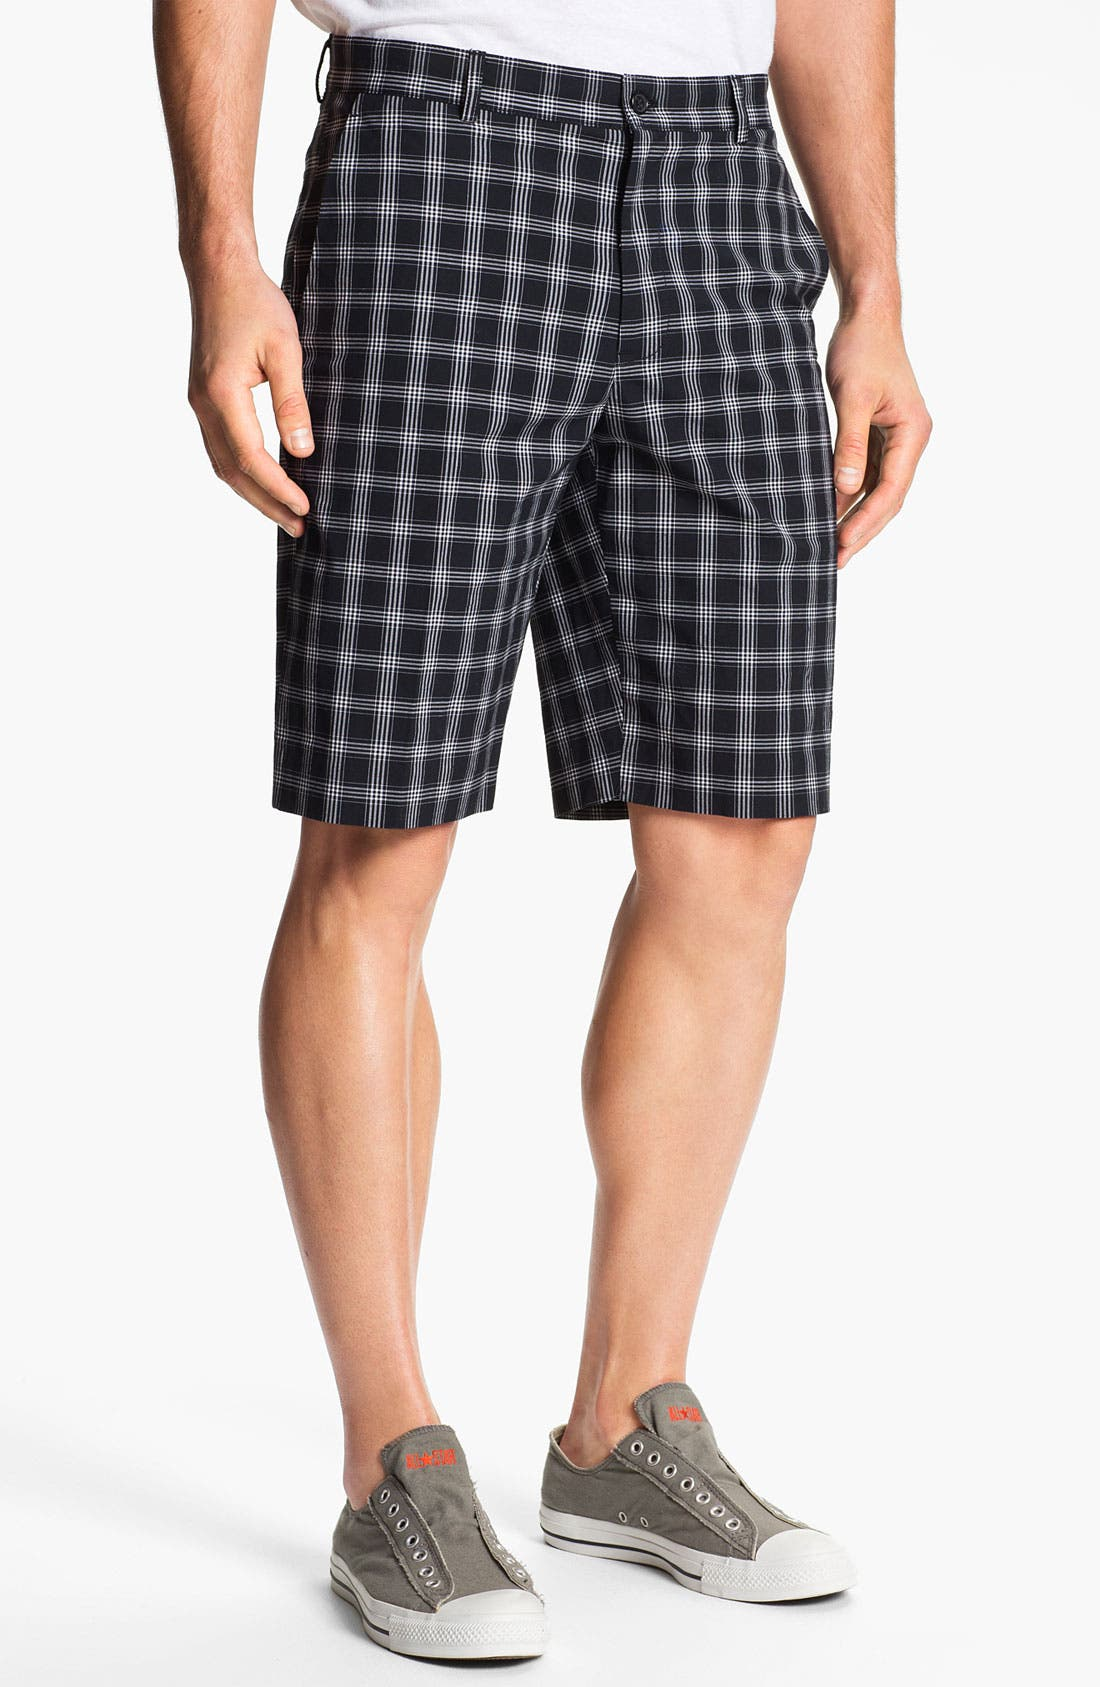 Alternate Image 1 Selected - Michael Kors 'Noah' Flat Front Shorts (Online Only)